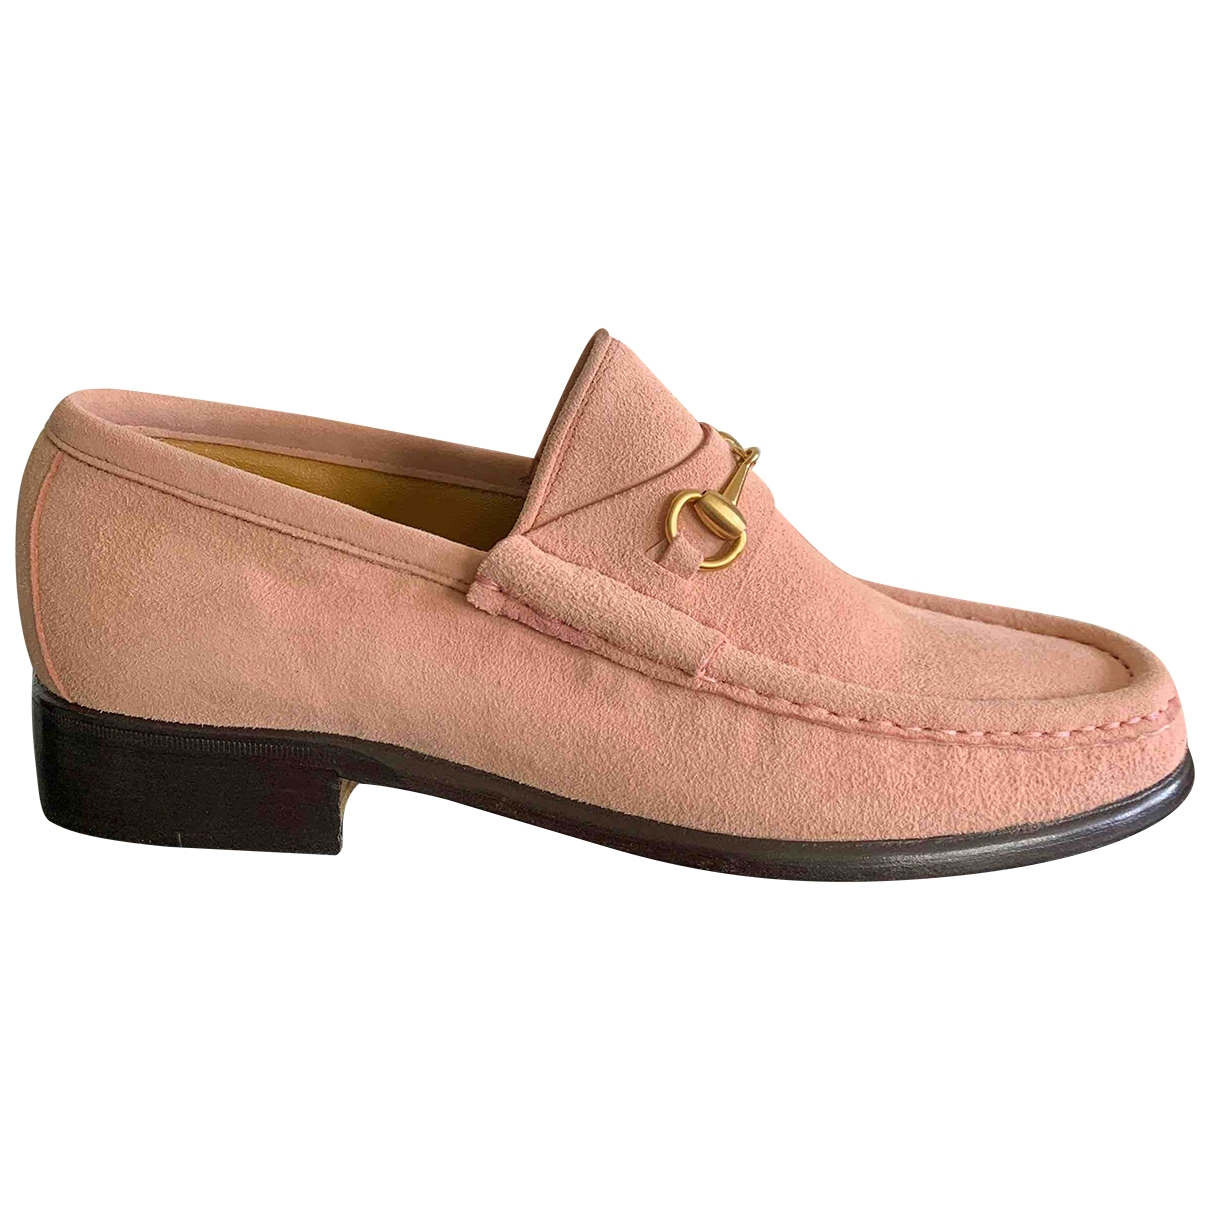 Gucci \N Pink Suede Flats for Women 35 IT